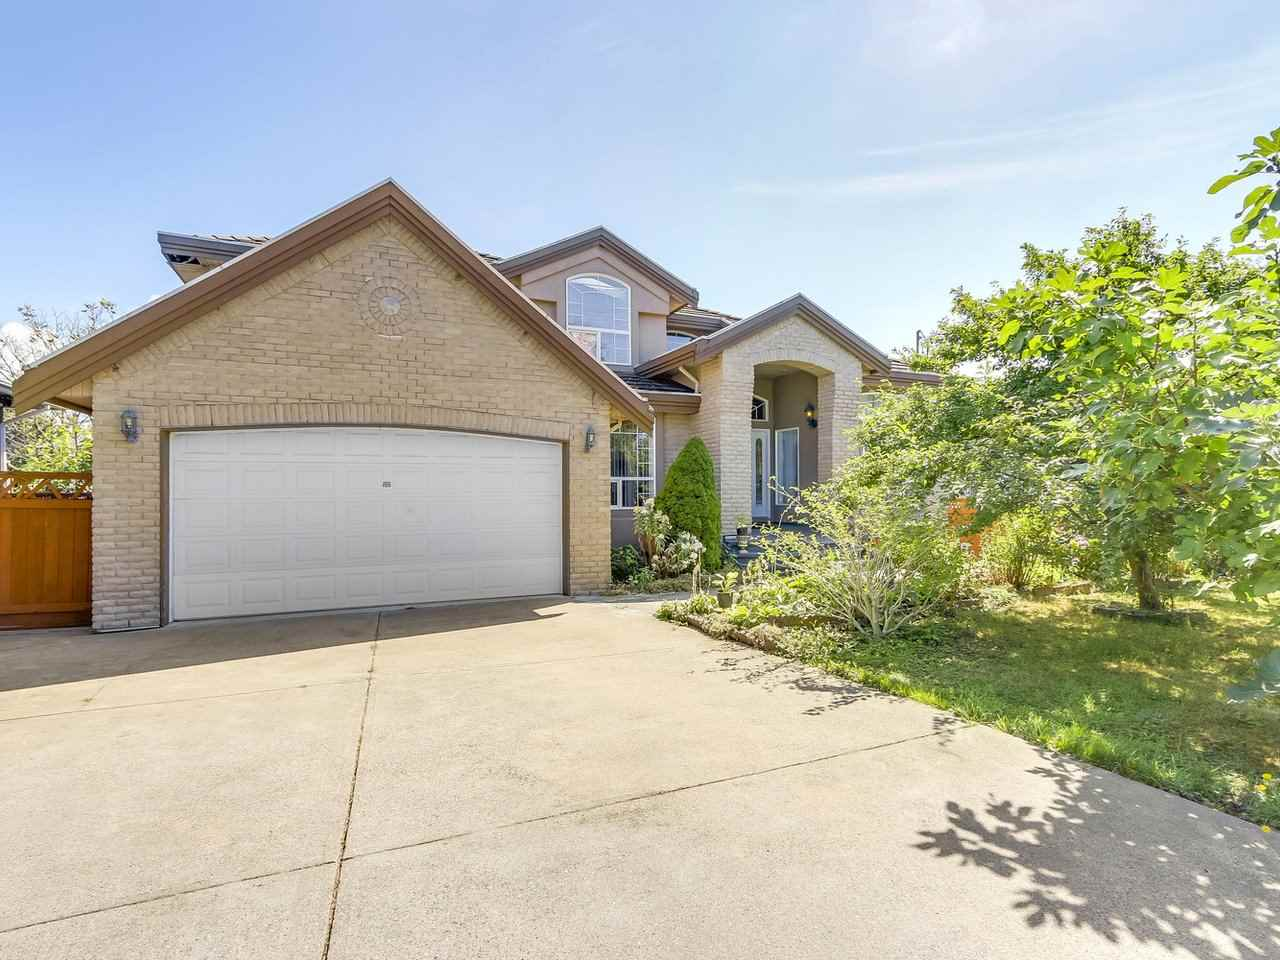 Detached at 8830 117A STREET, N. Delta, British Columbia. Image 1